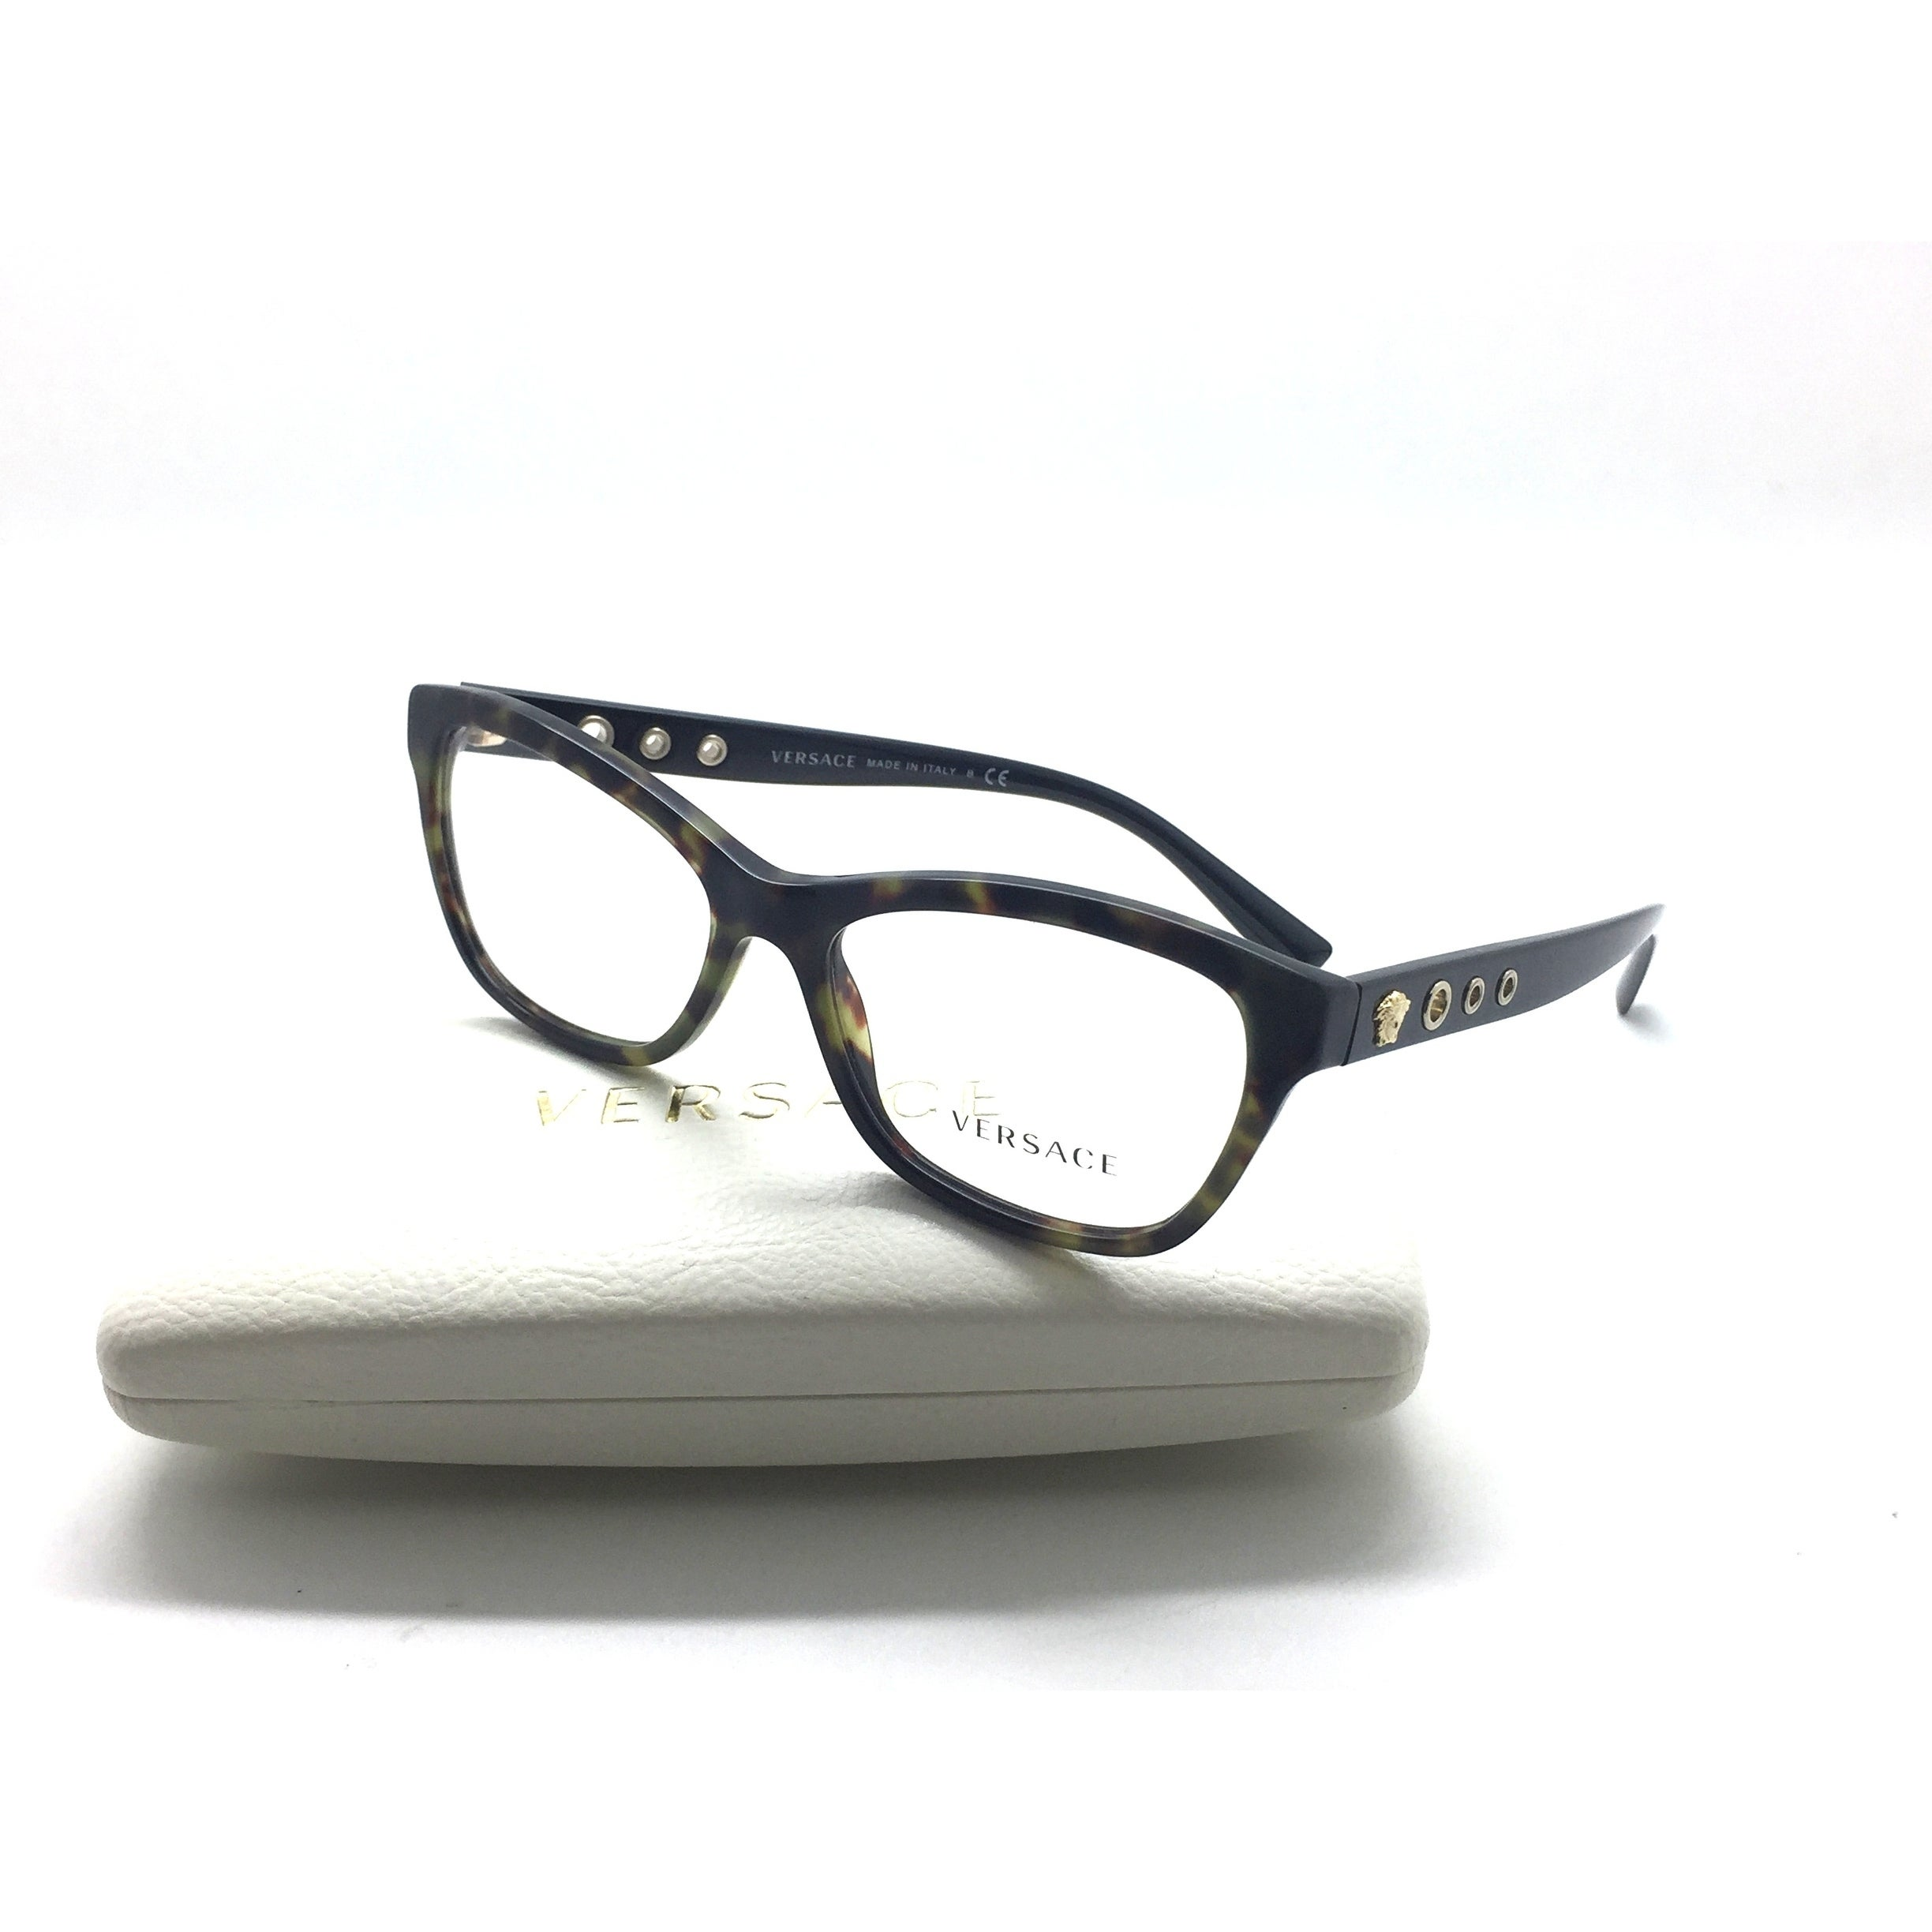 5b8cb050ccbb Shop Versace Military MOD 3225-A 5183 Green Havana Authentic Eyeglasses  54mm - Free Shipping Today - Overstock.com - 22873129